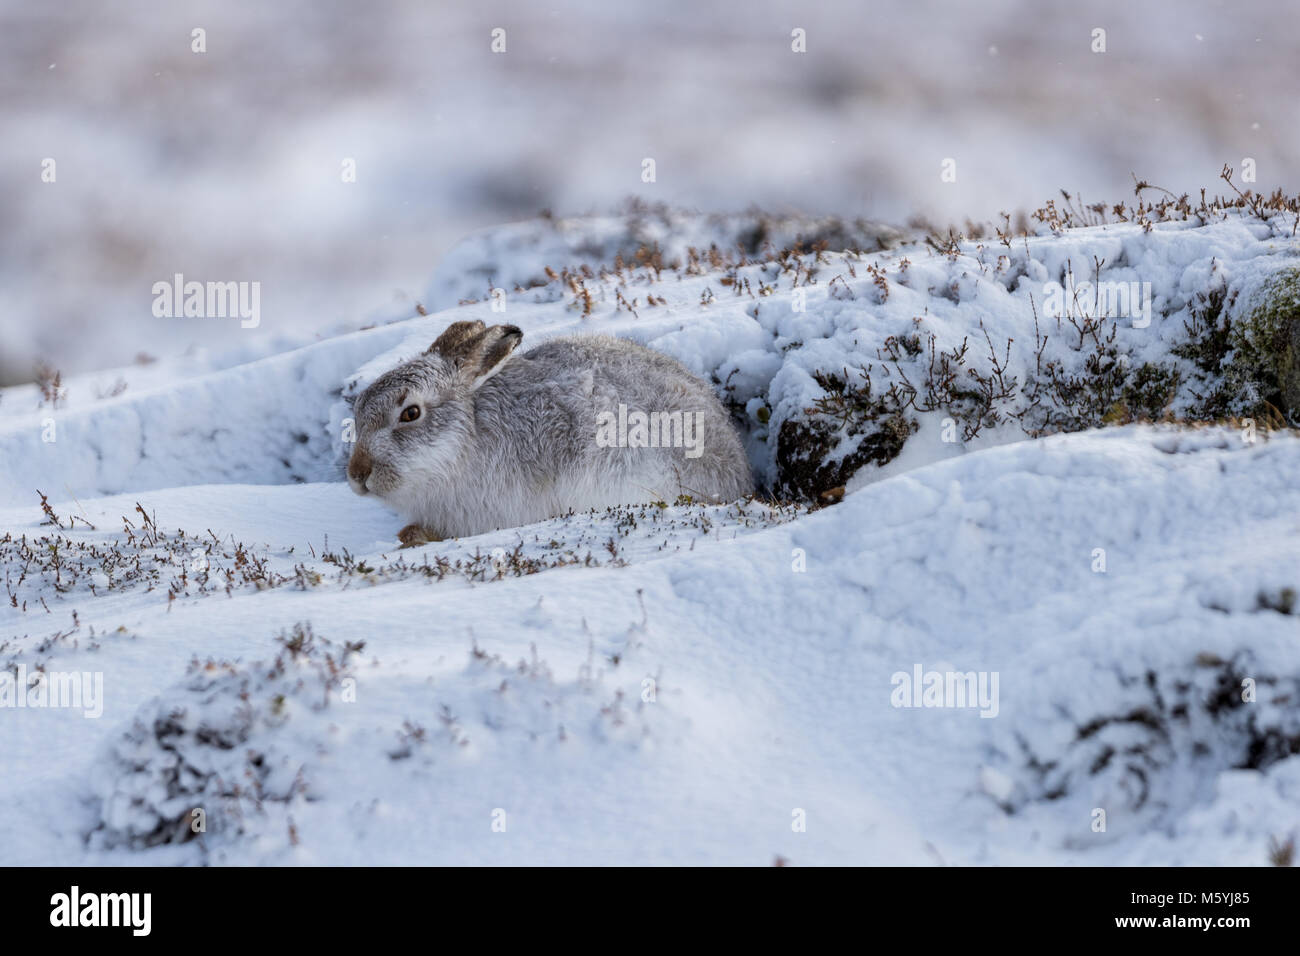 Mountain hare (Lepus timidus) sitting sheltered  in the snow. - Stock Image